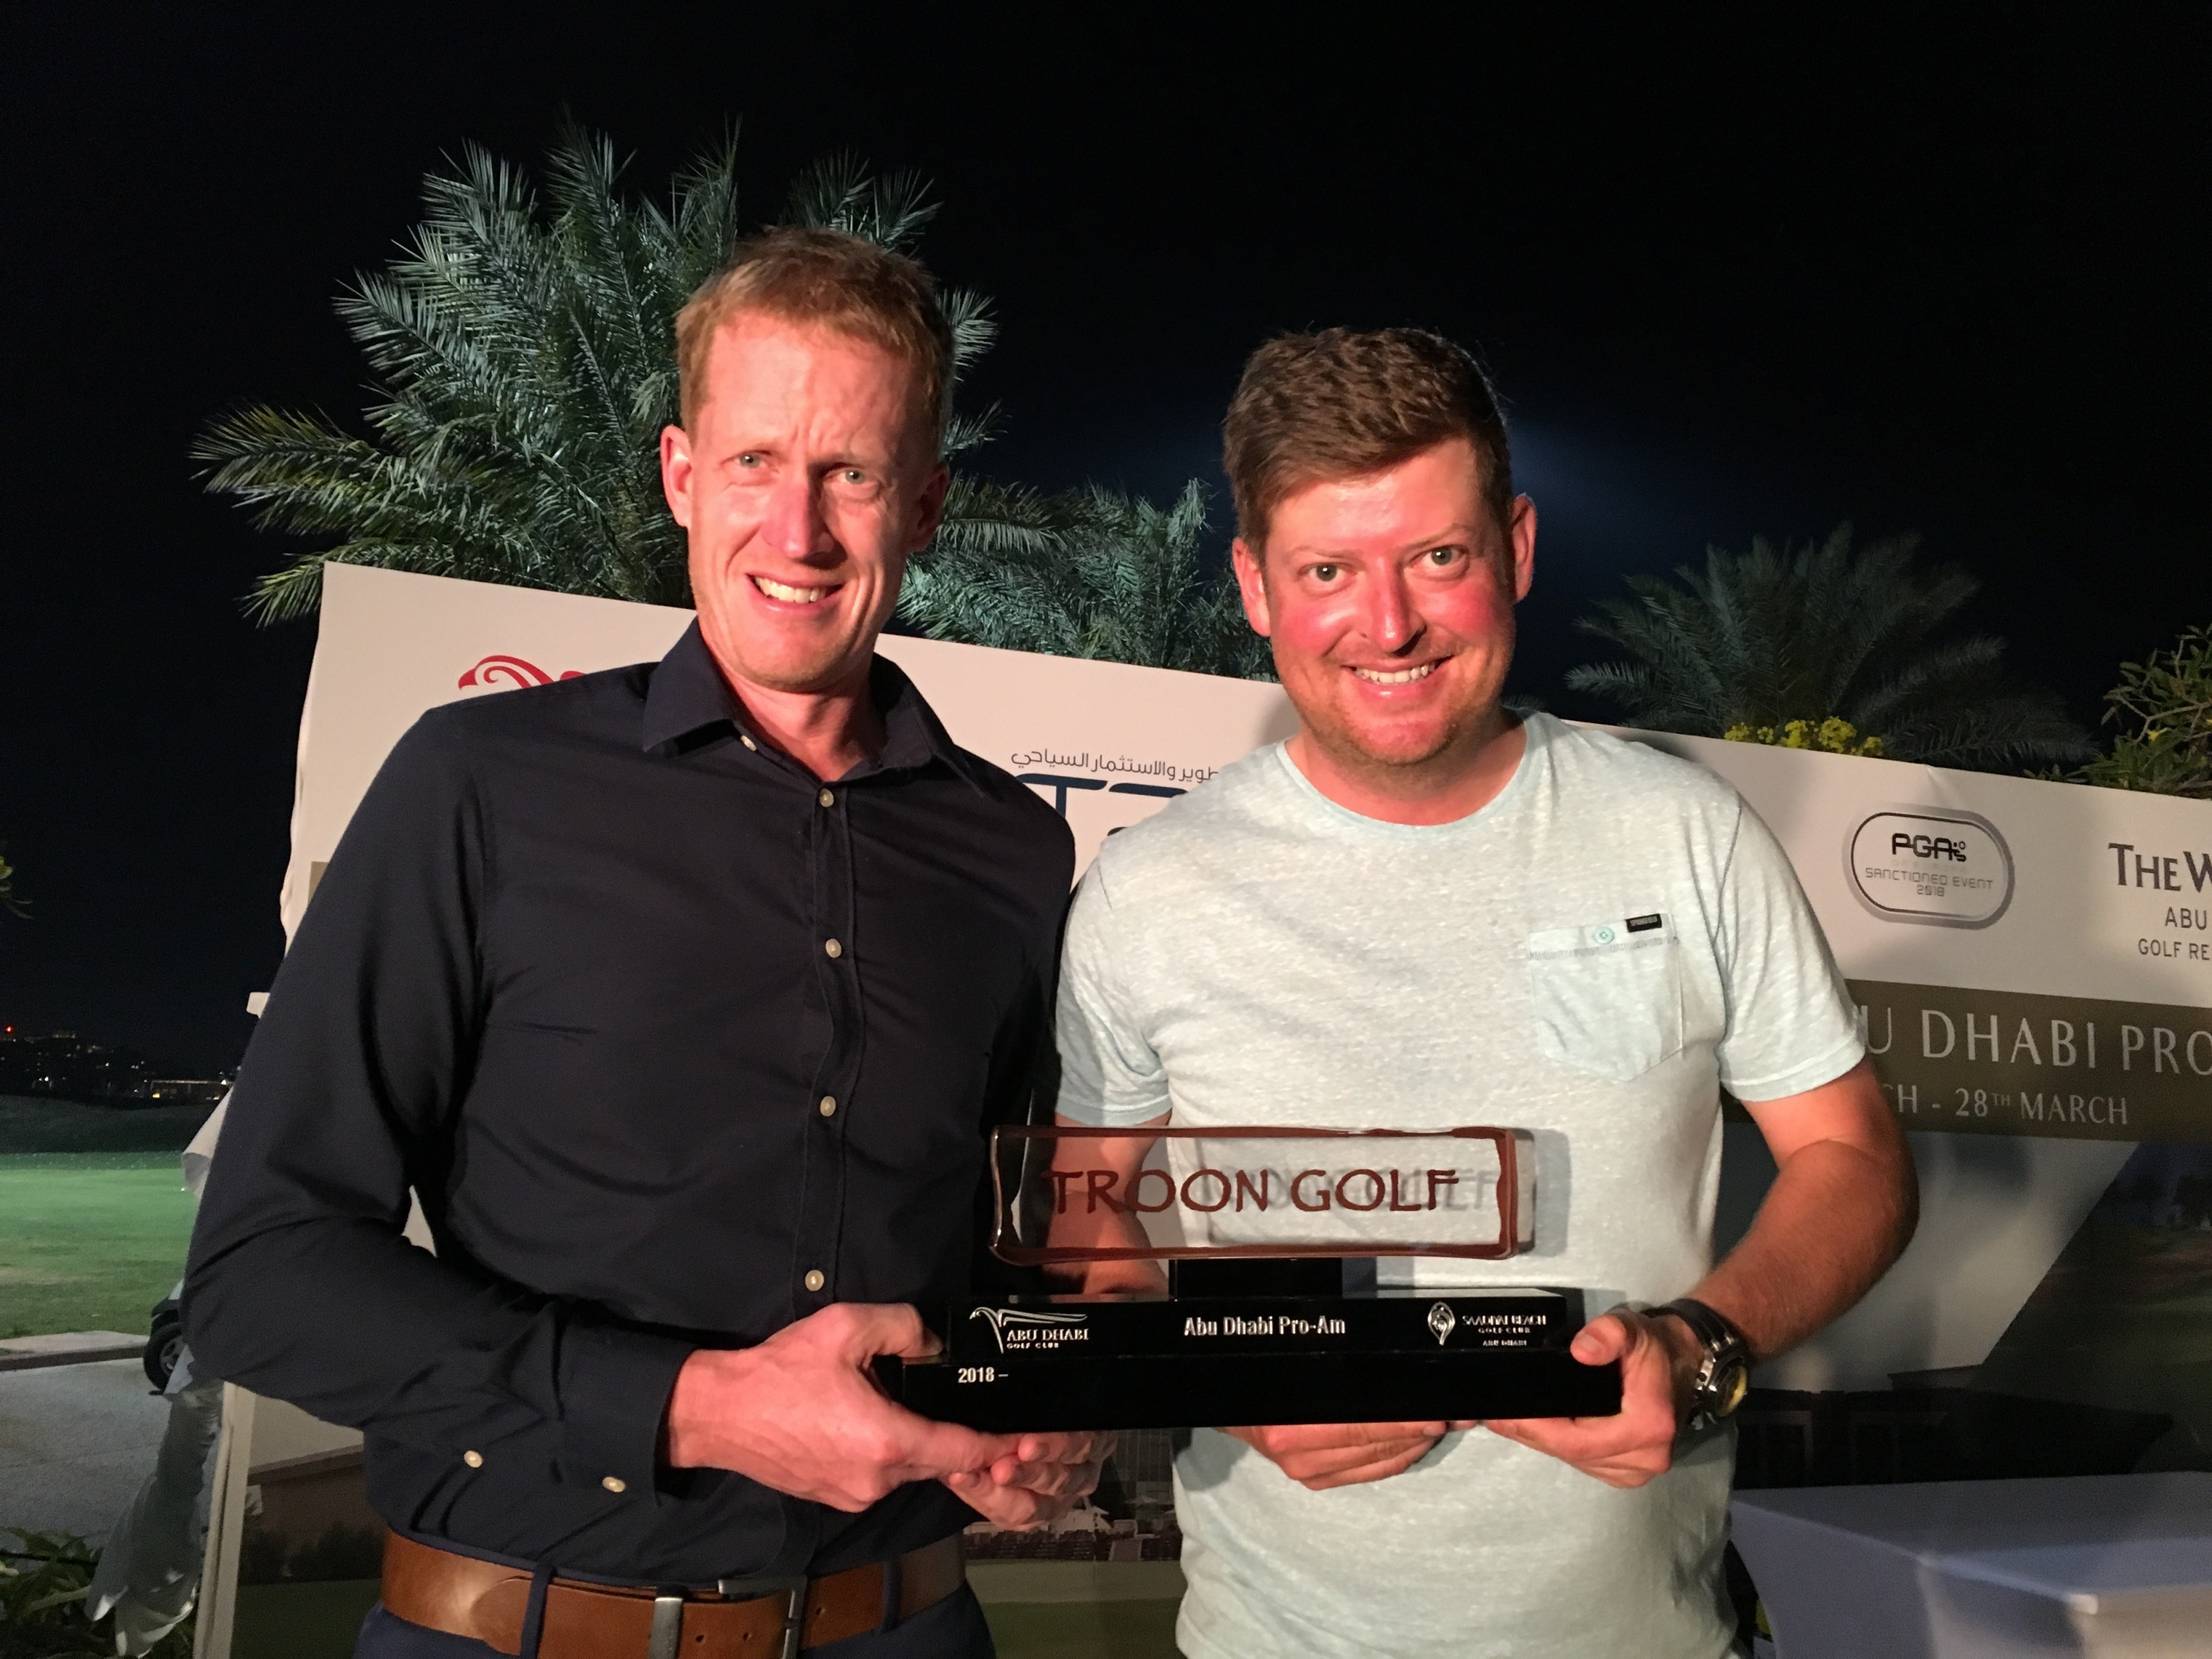 Gane & Keyser Share Honours at Troon Golf Abu Dhabi Pro-Am